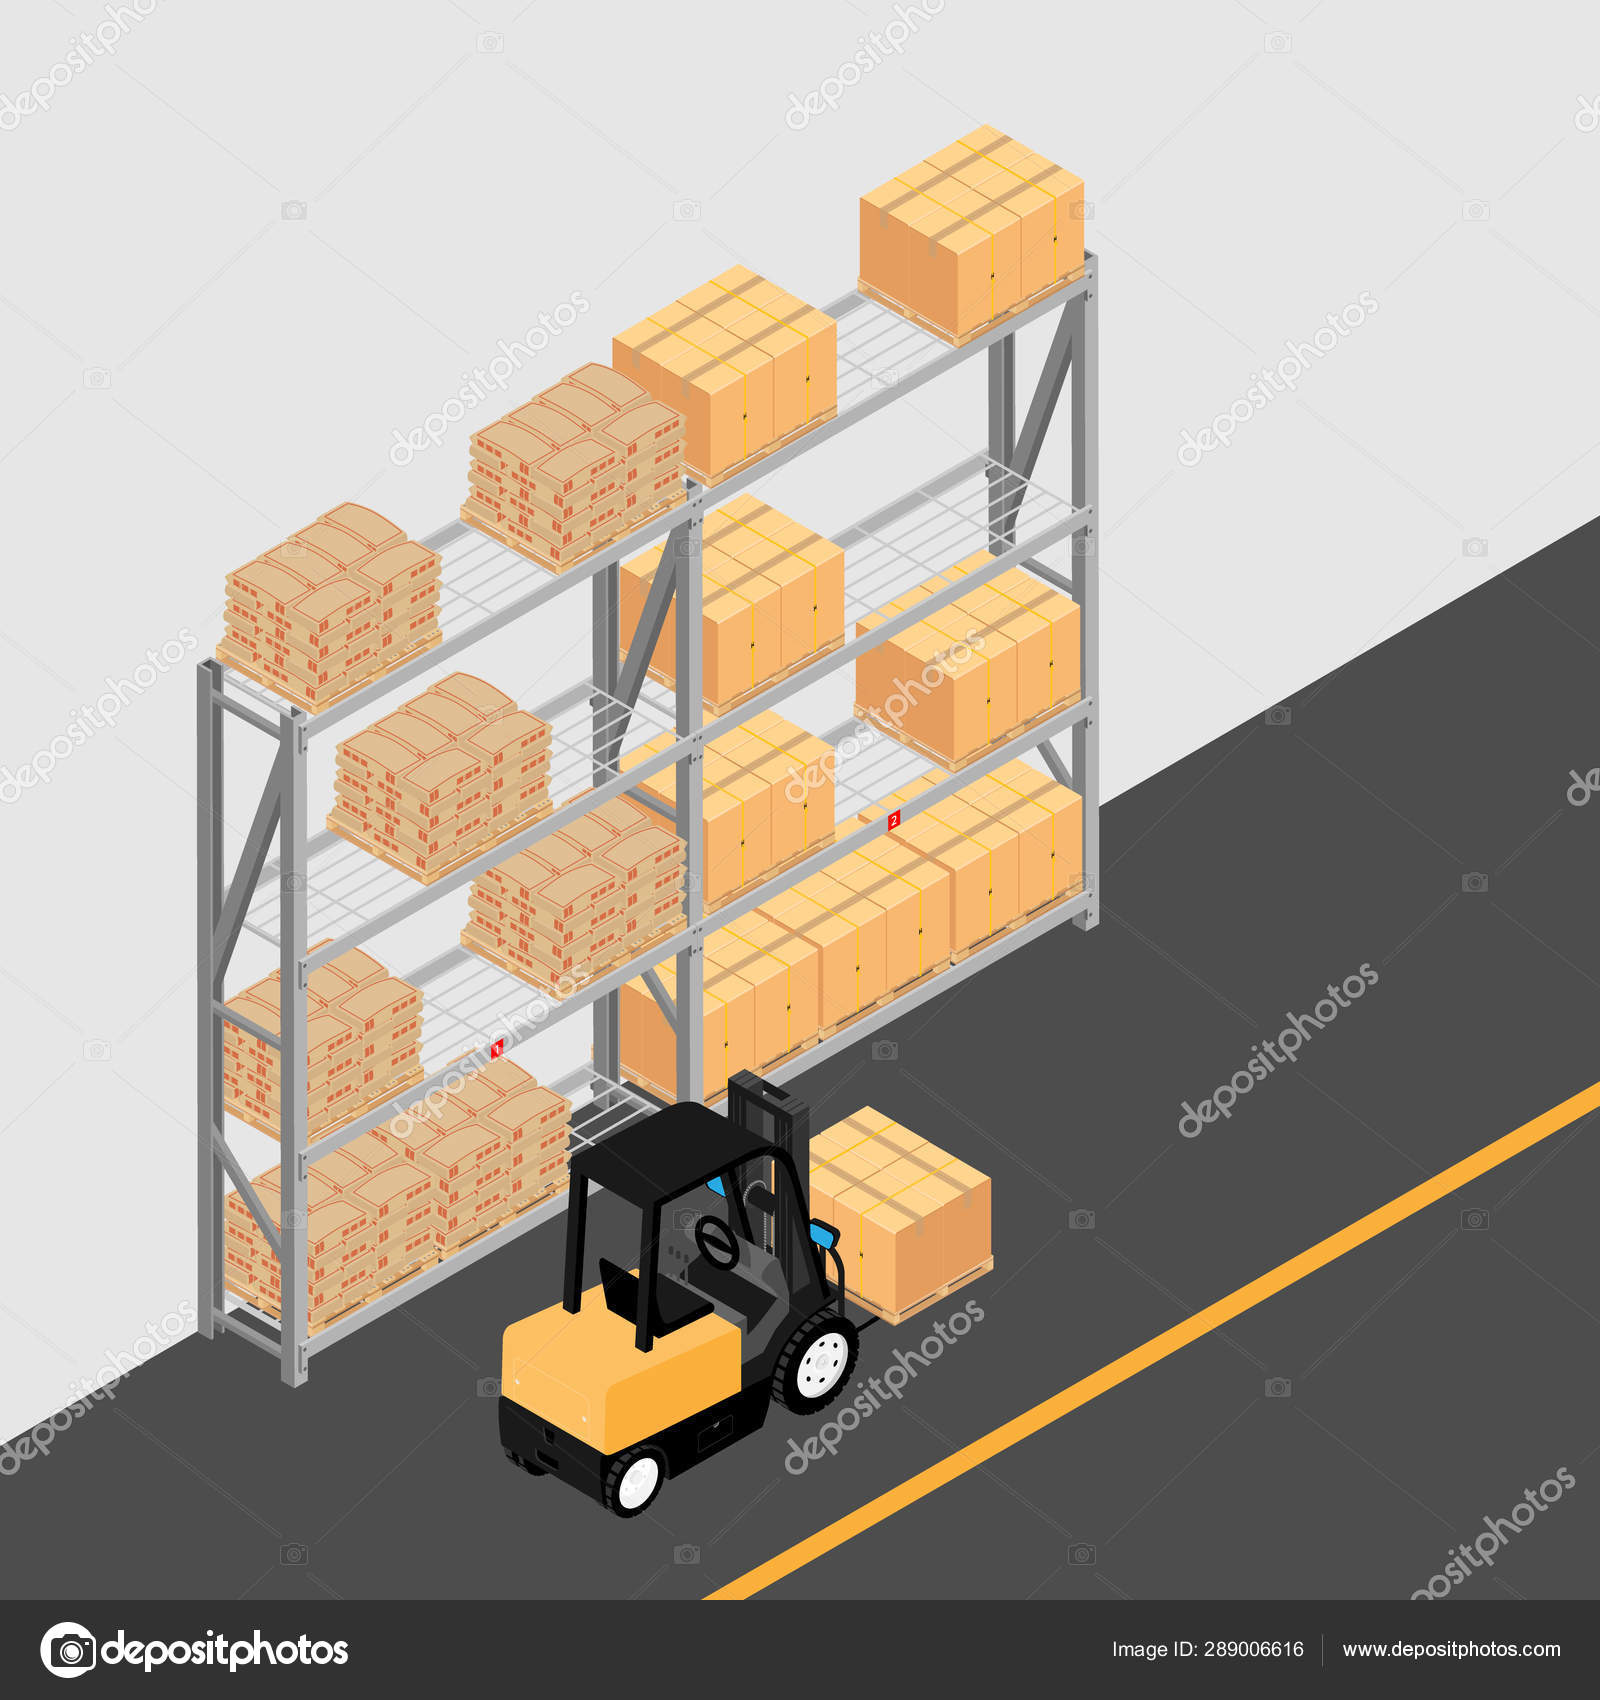 Warehouse Interior With Shelves, Pallets, Forklift And Boxes